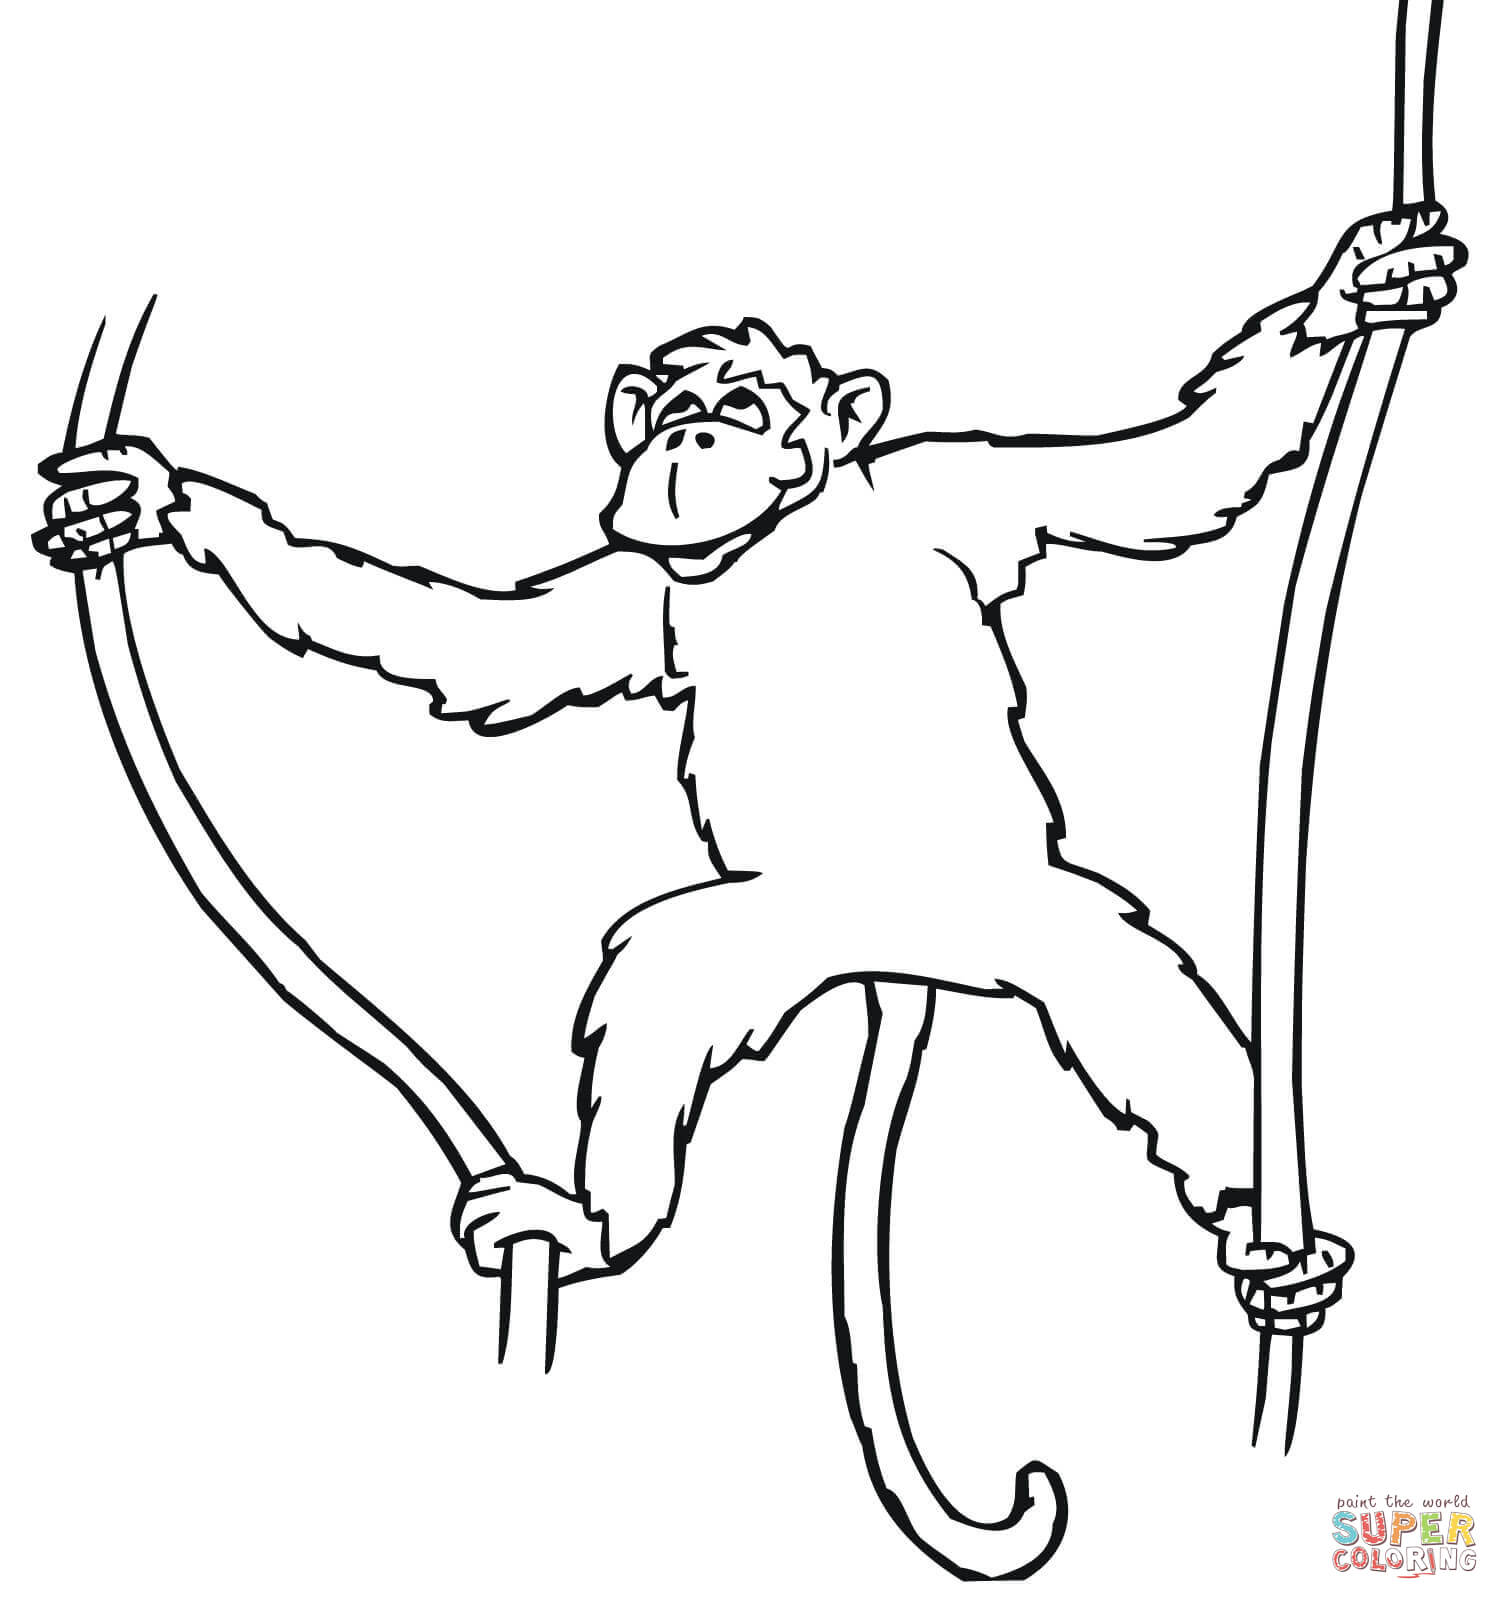 Cartoon Monkeys Coloring Pages Free Coloring Pages